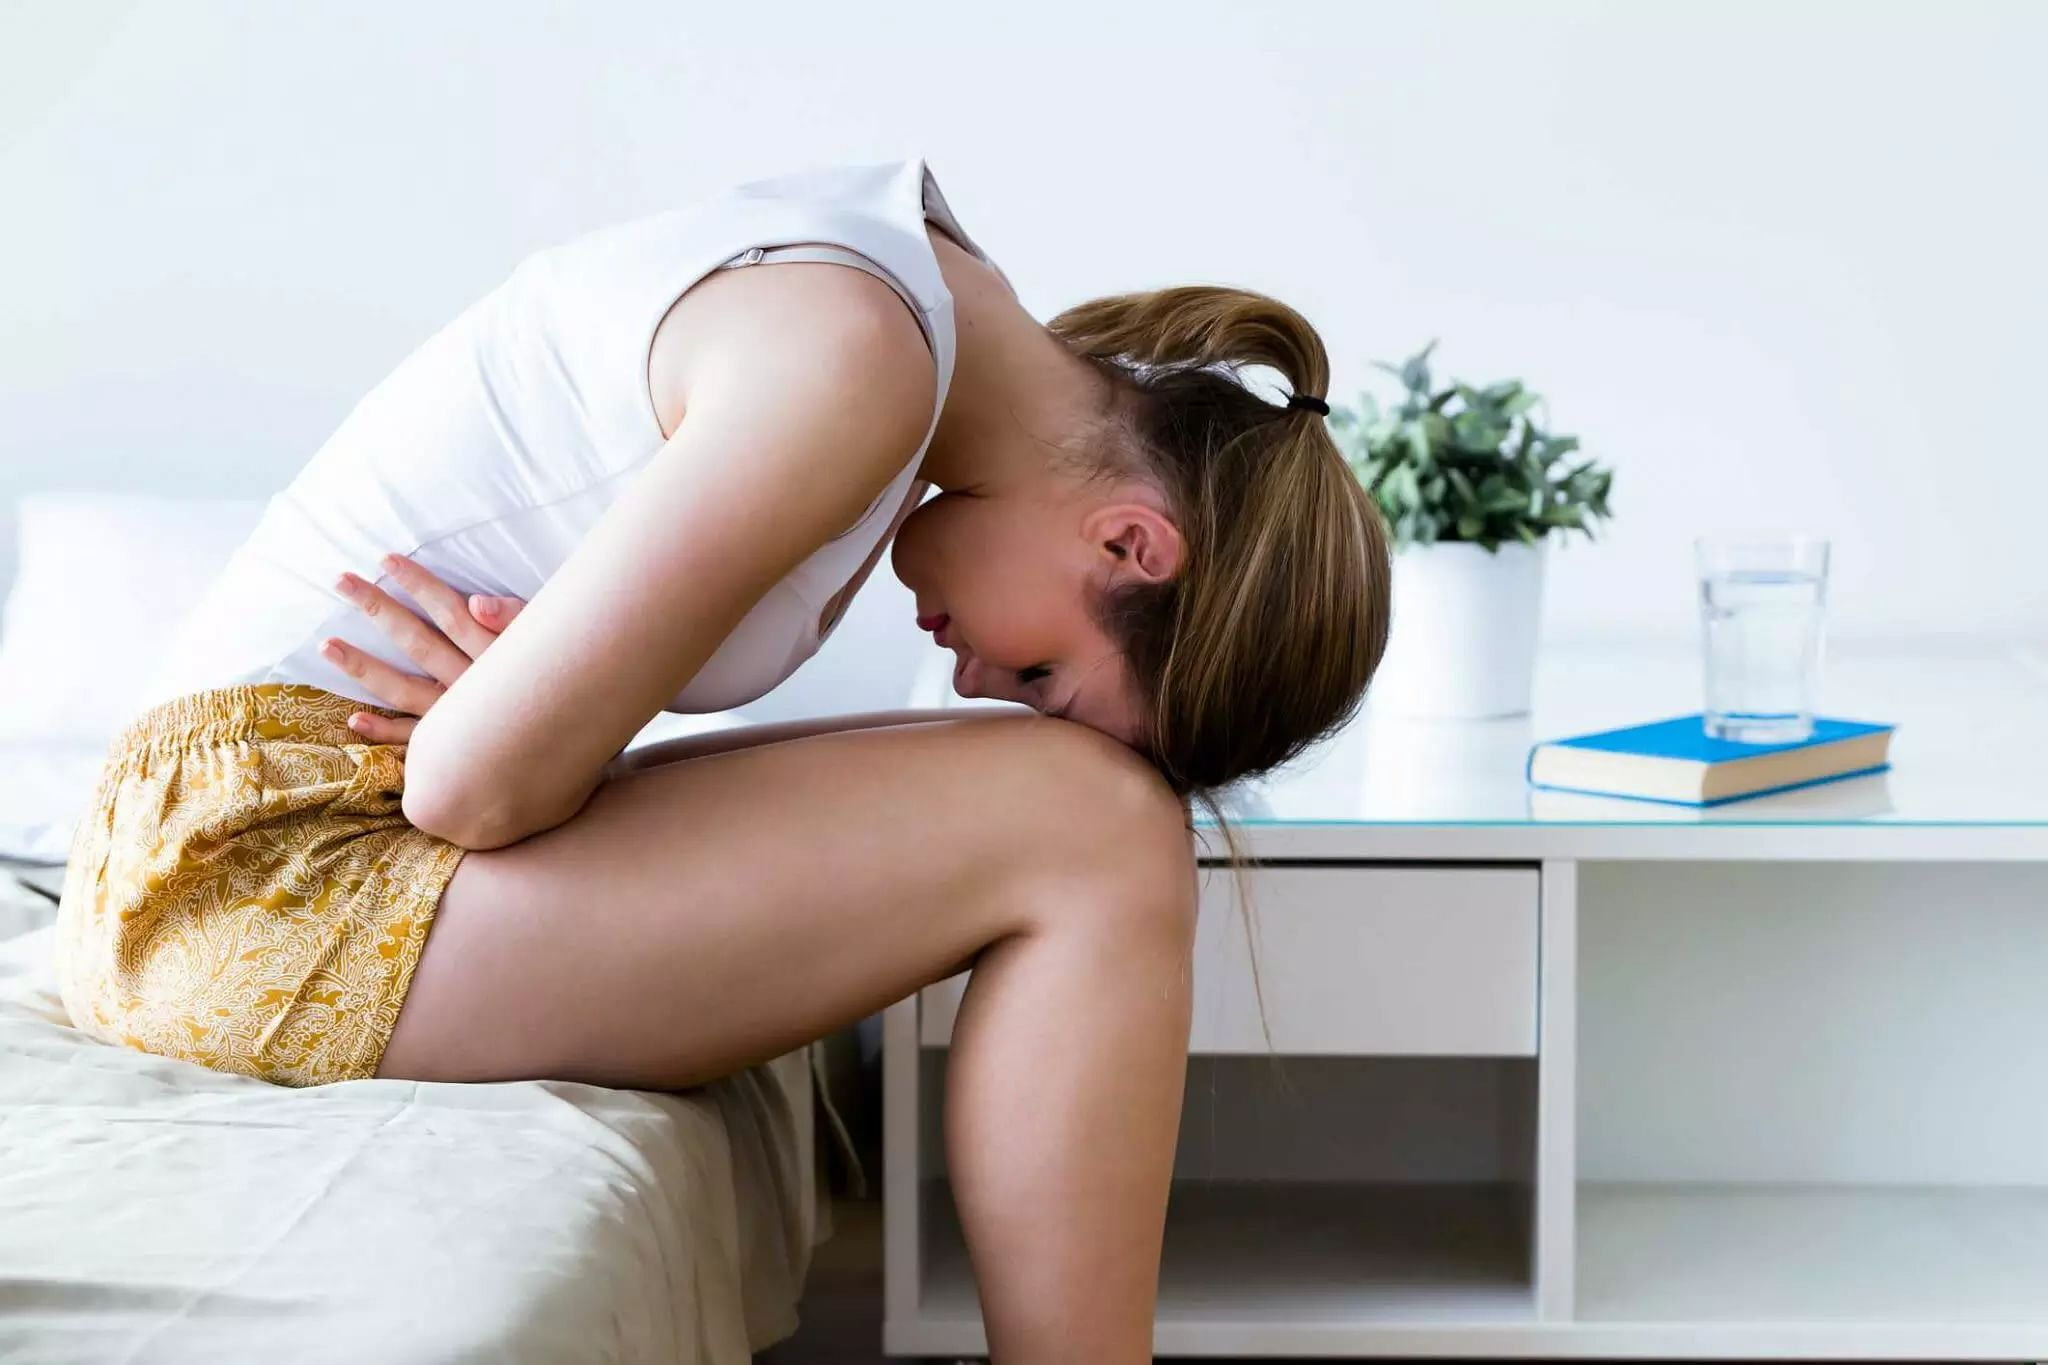 Are you constipated? Here are some solutions and treatments